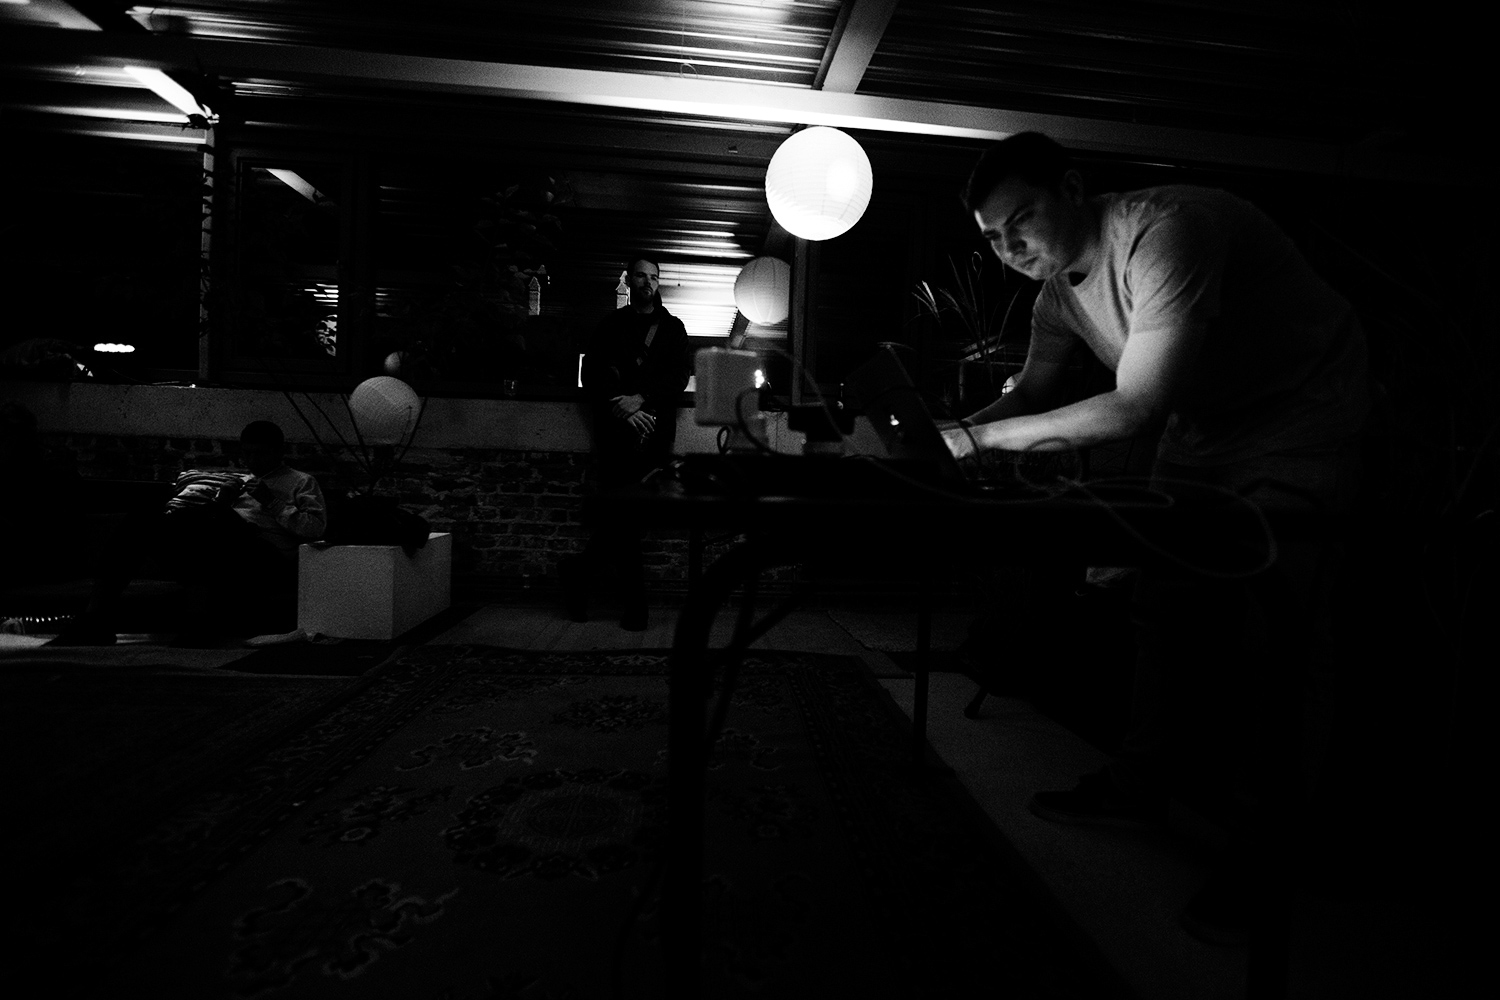 Mosam Howieson by Laurent Orseau - Meakusma Festival - Alter Schlachthof - Eupen, Belgium #3